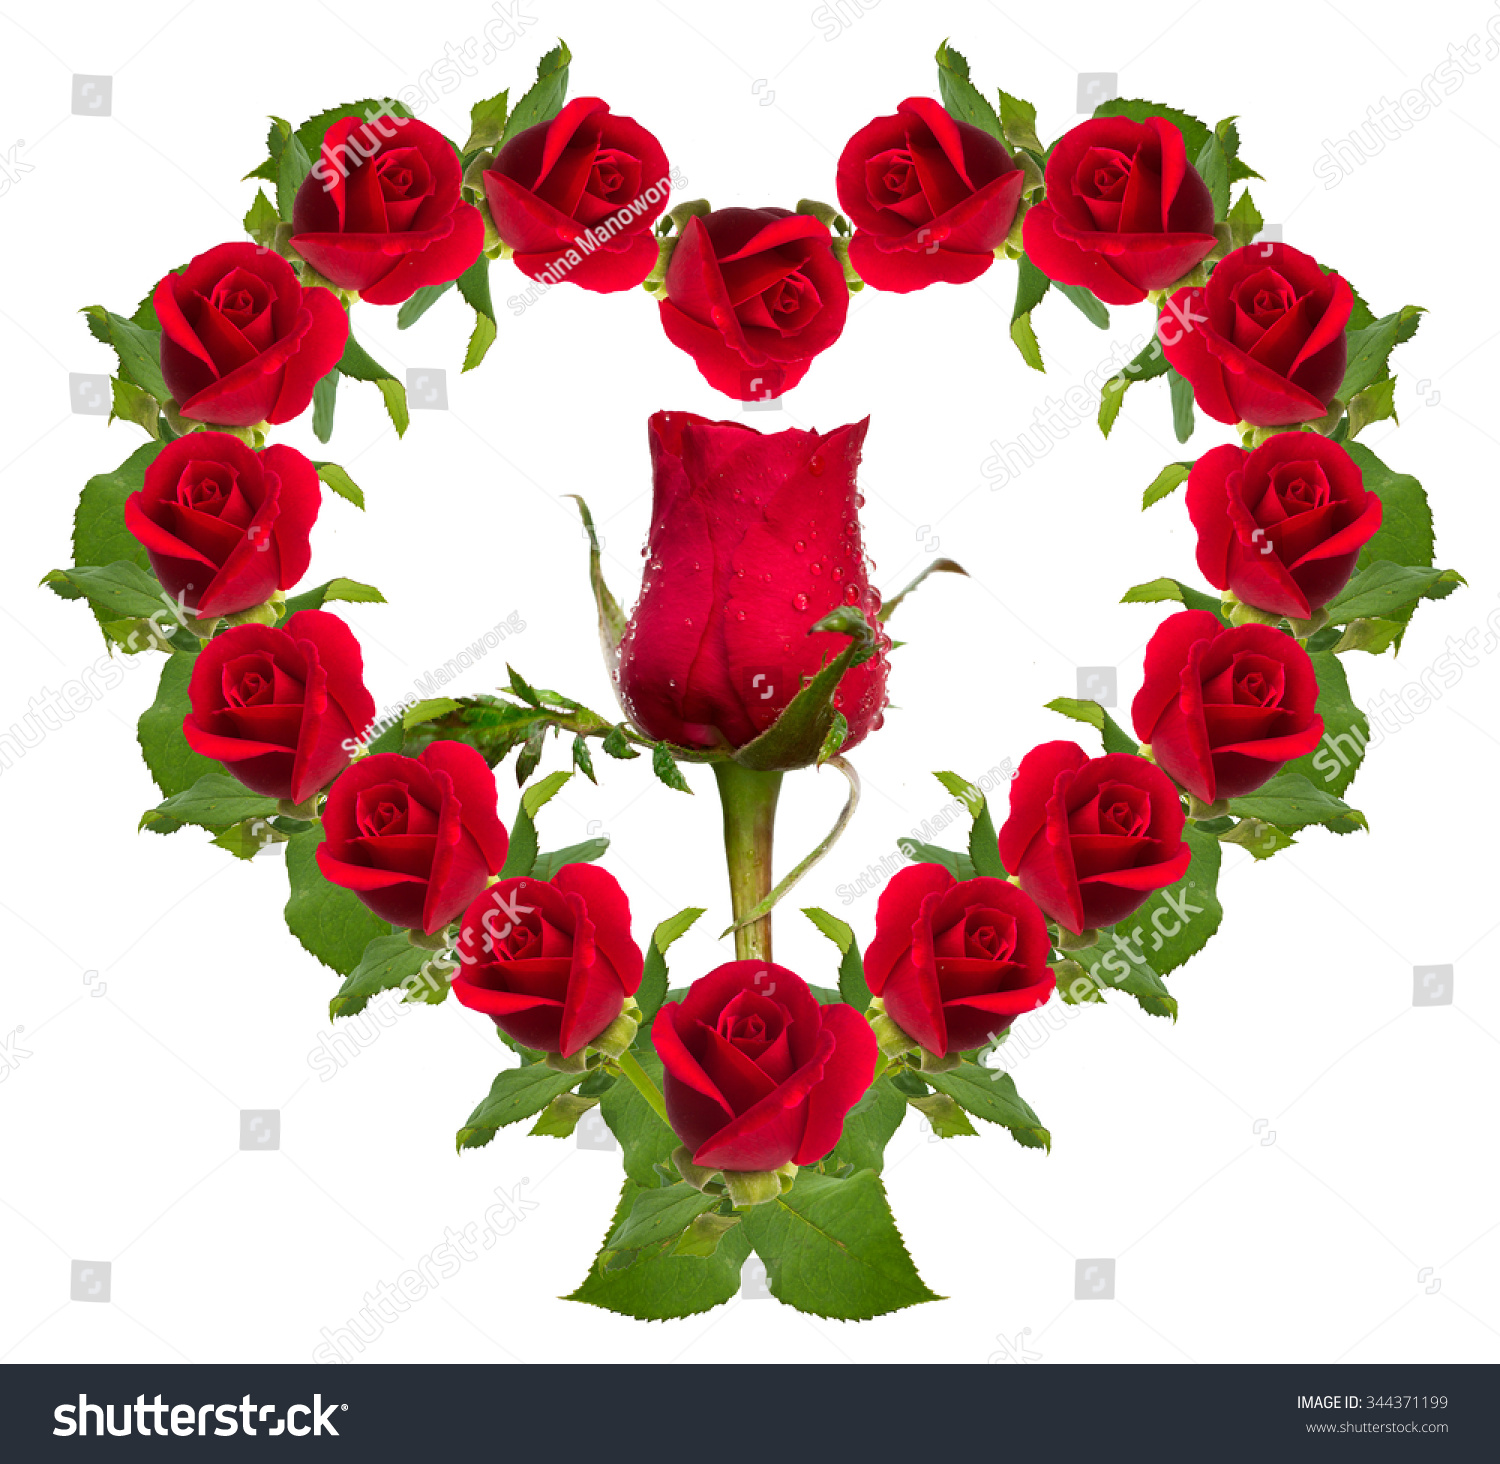 Royalty-free Red rose flower bouquet heart shape… #344371199 Stock ...